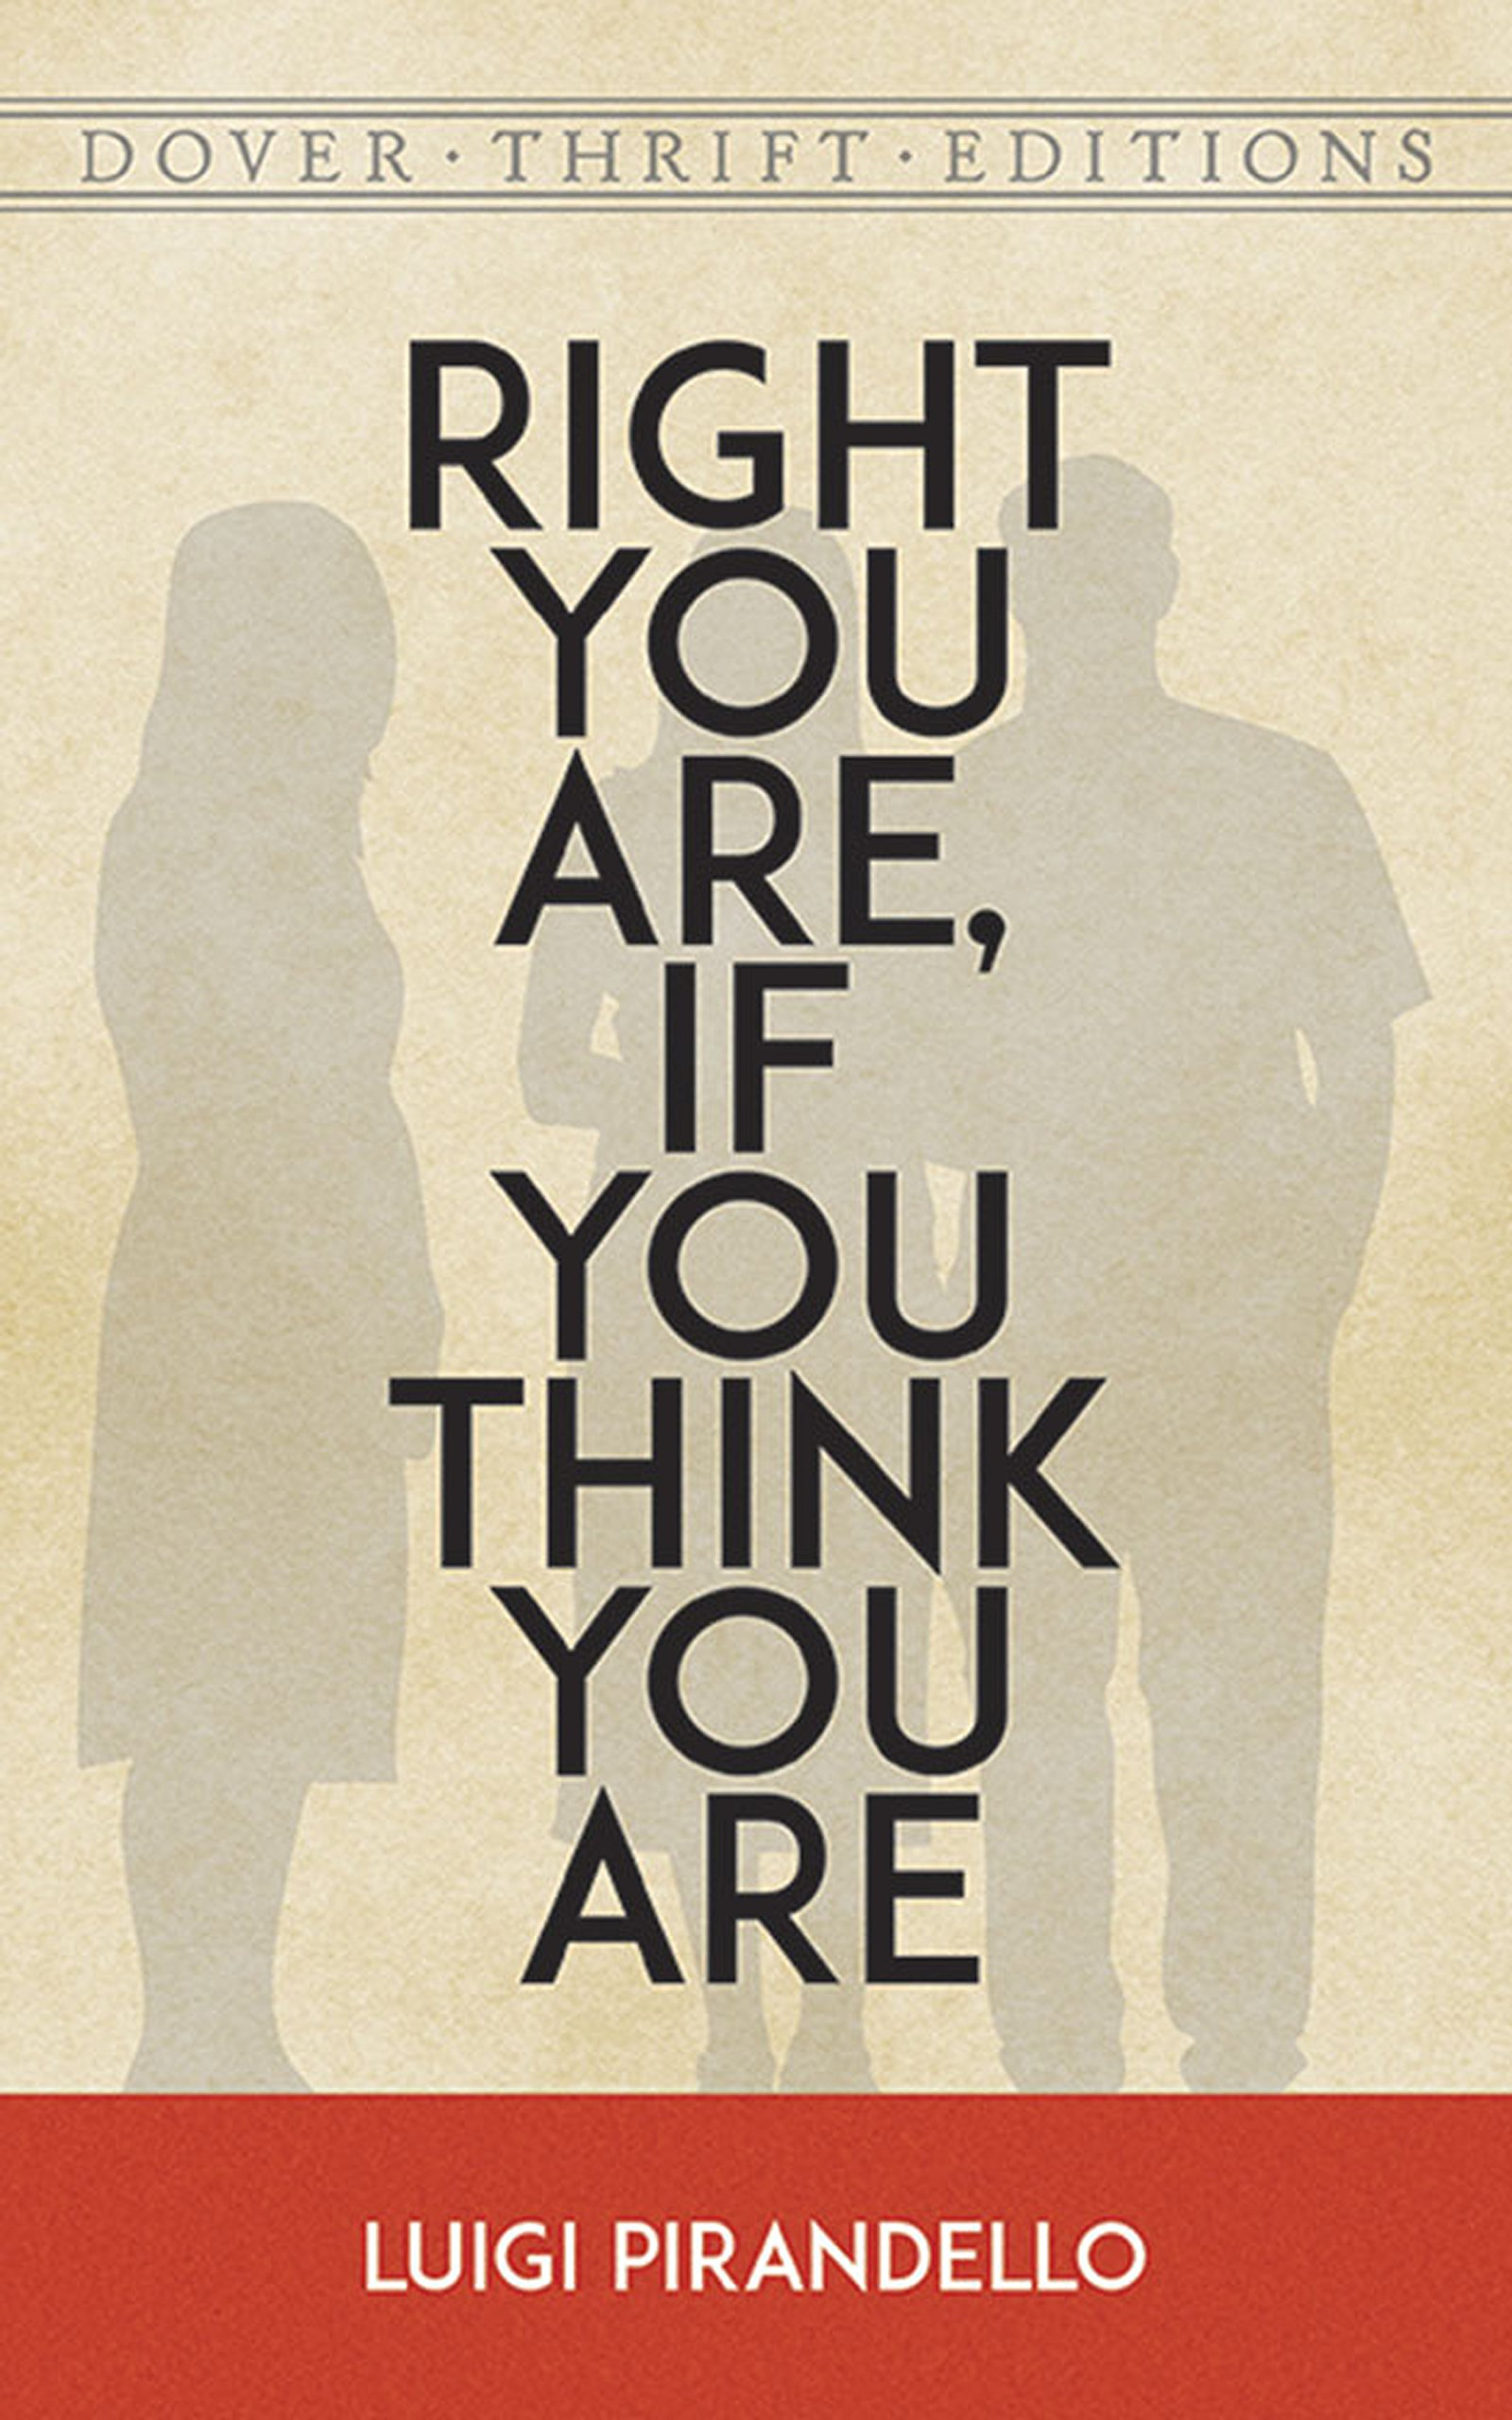 Read Online Right You Are, If You Think You Are (Dover Thrift Editions) ebook